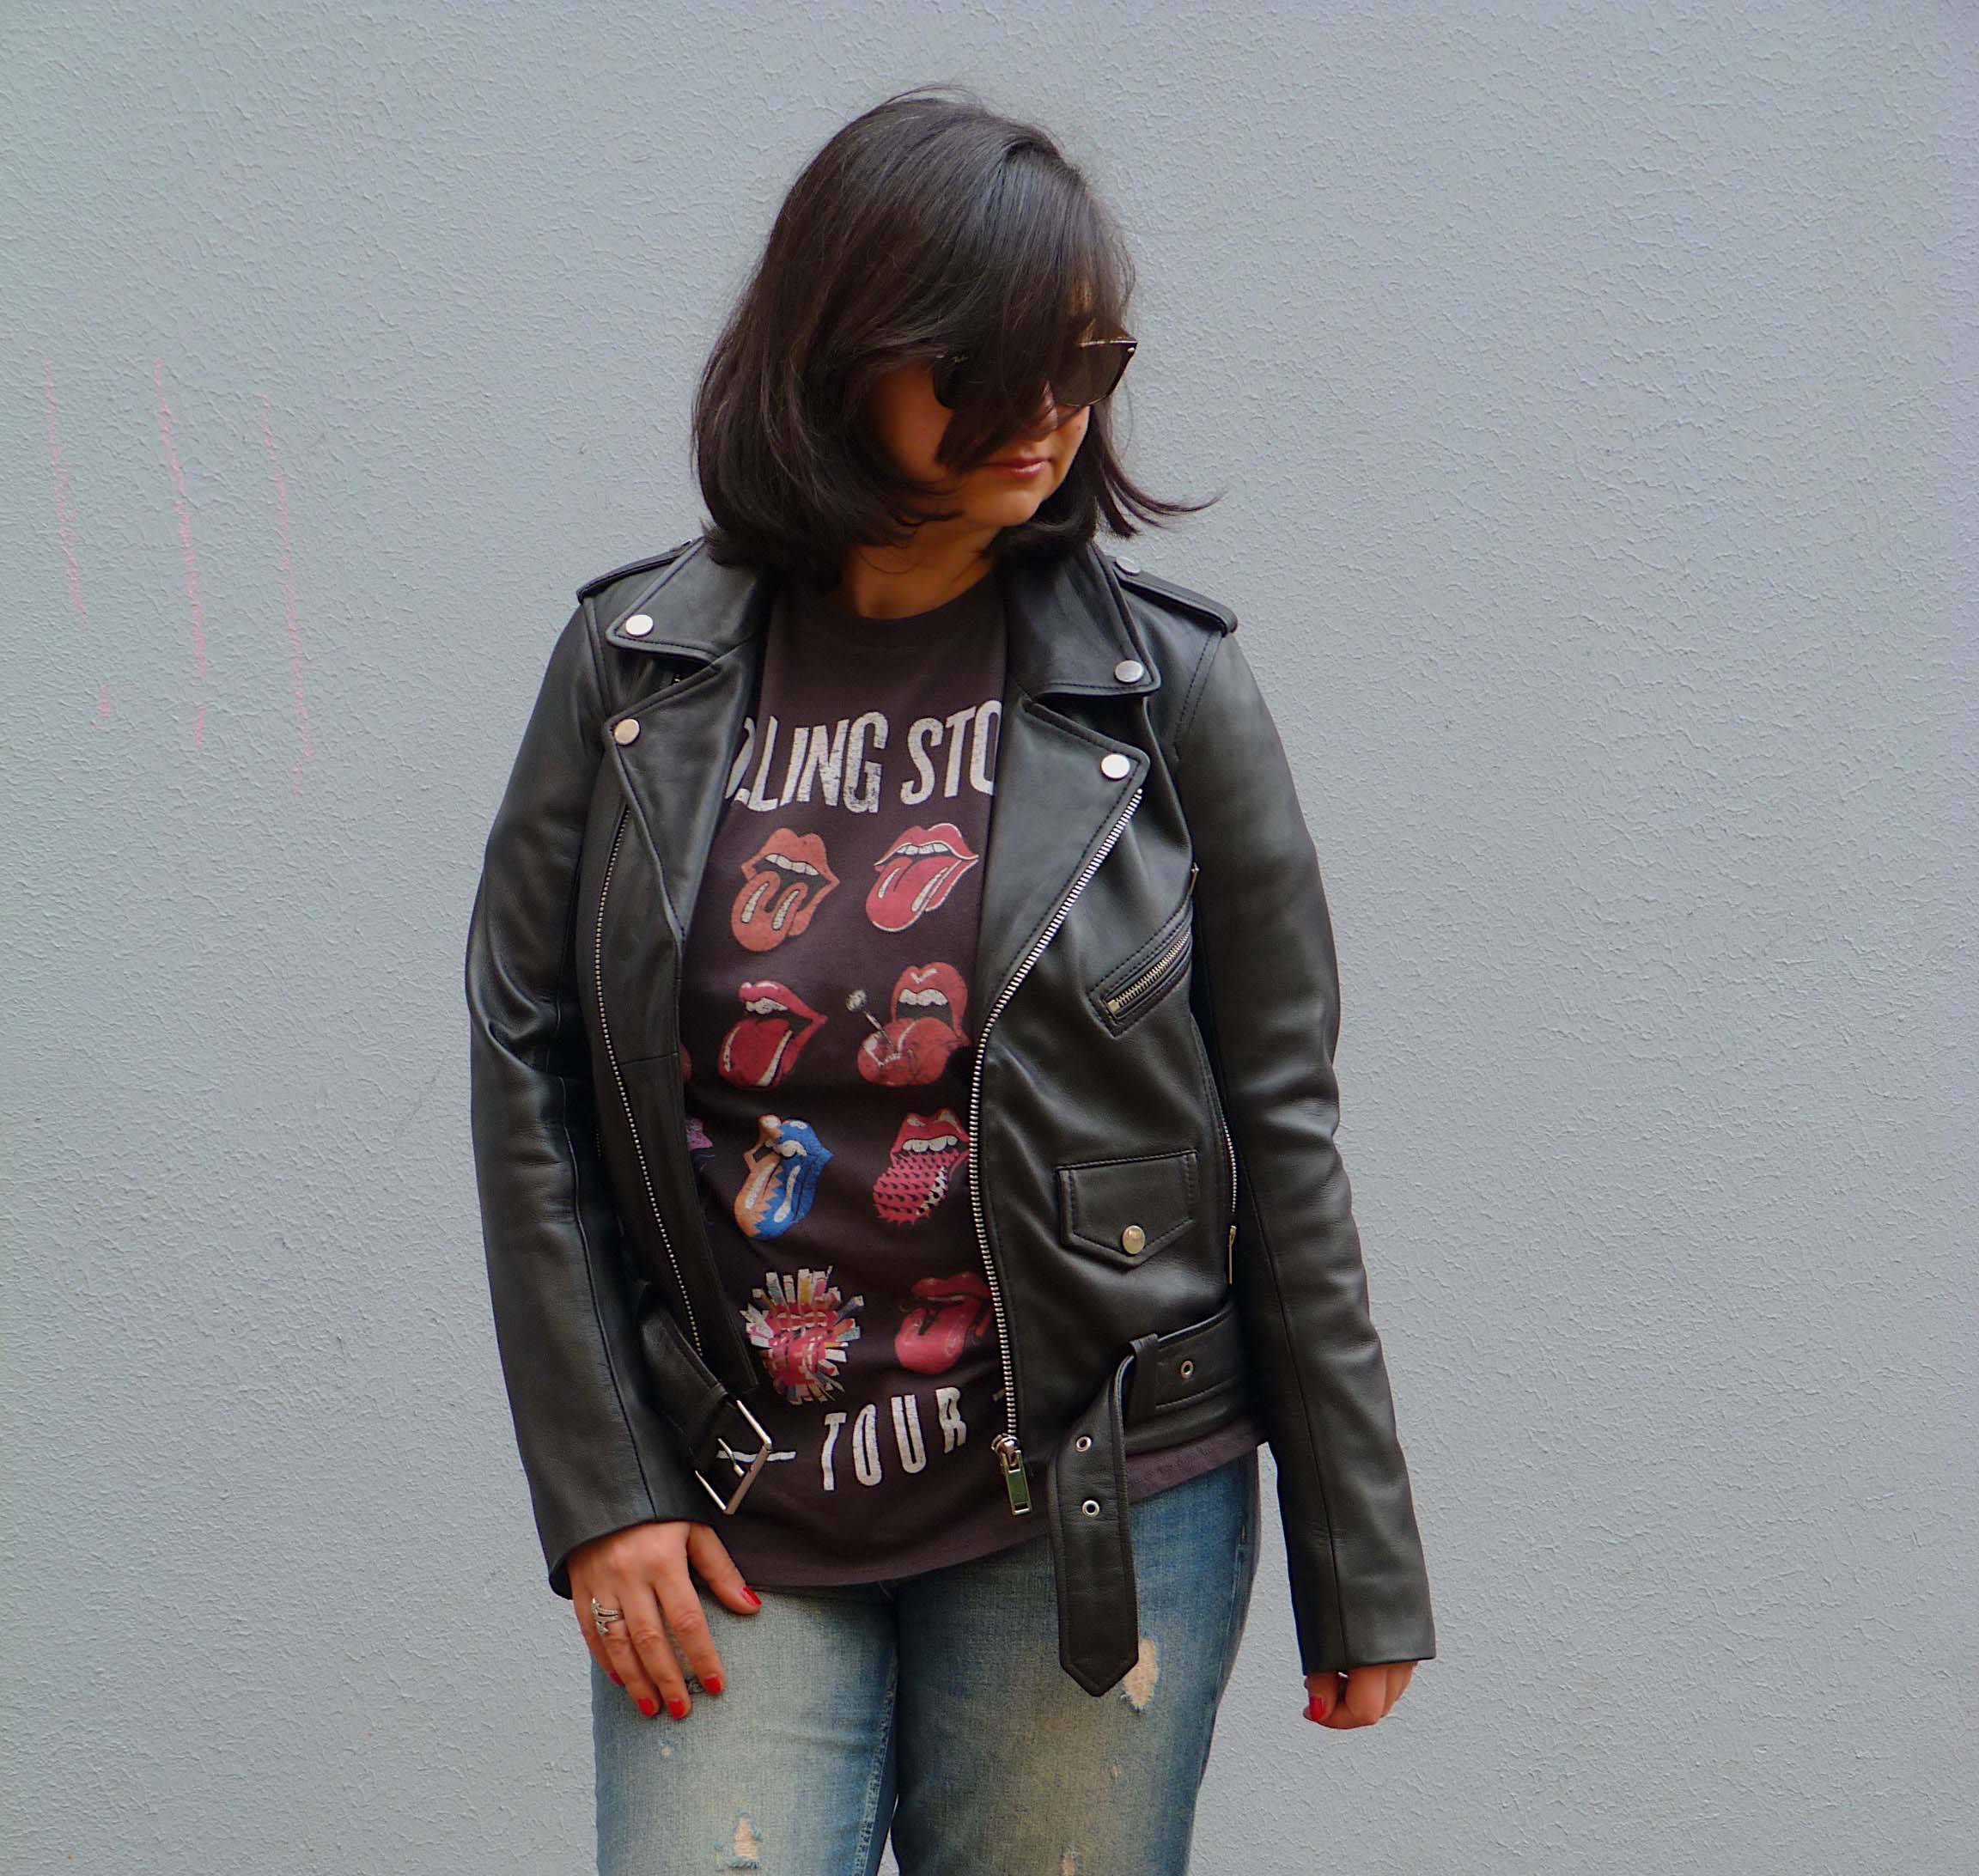 Tee Rolling Stones - Pull and Bear